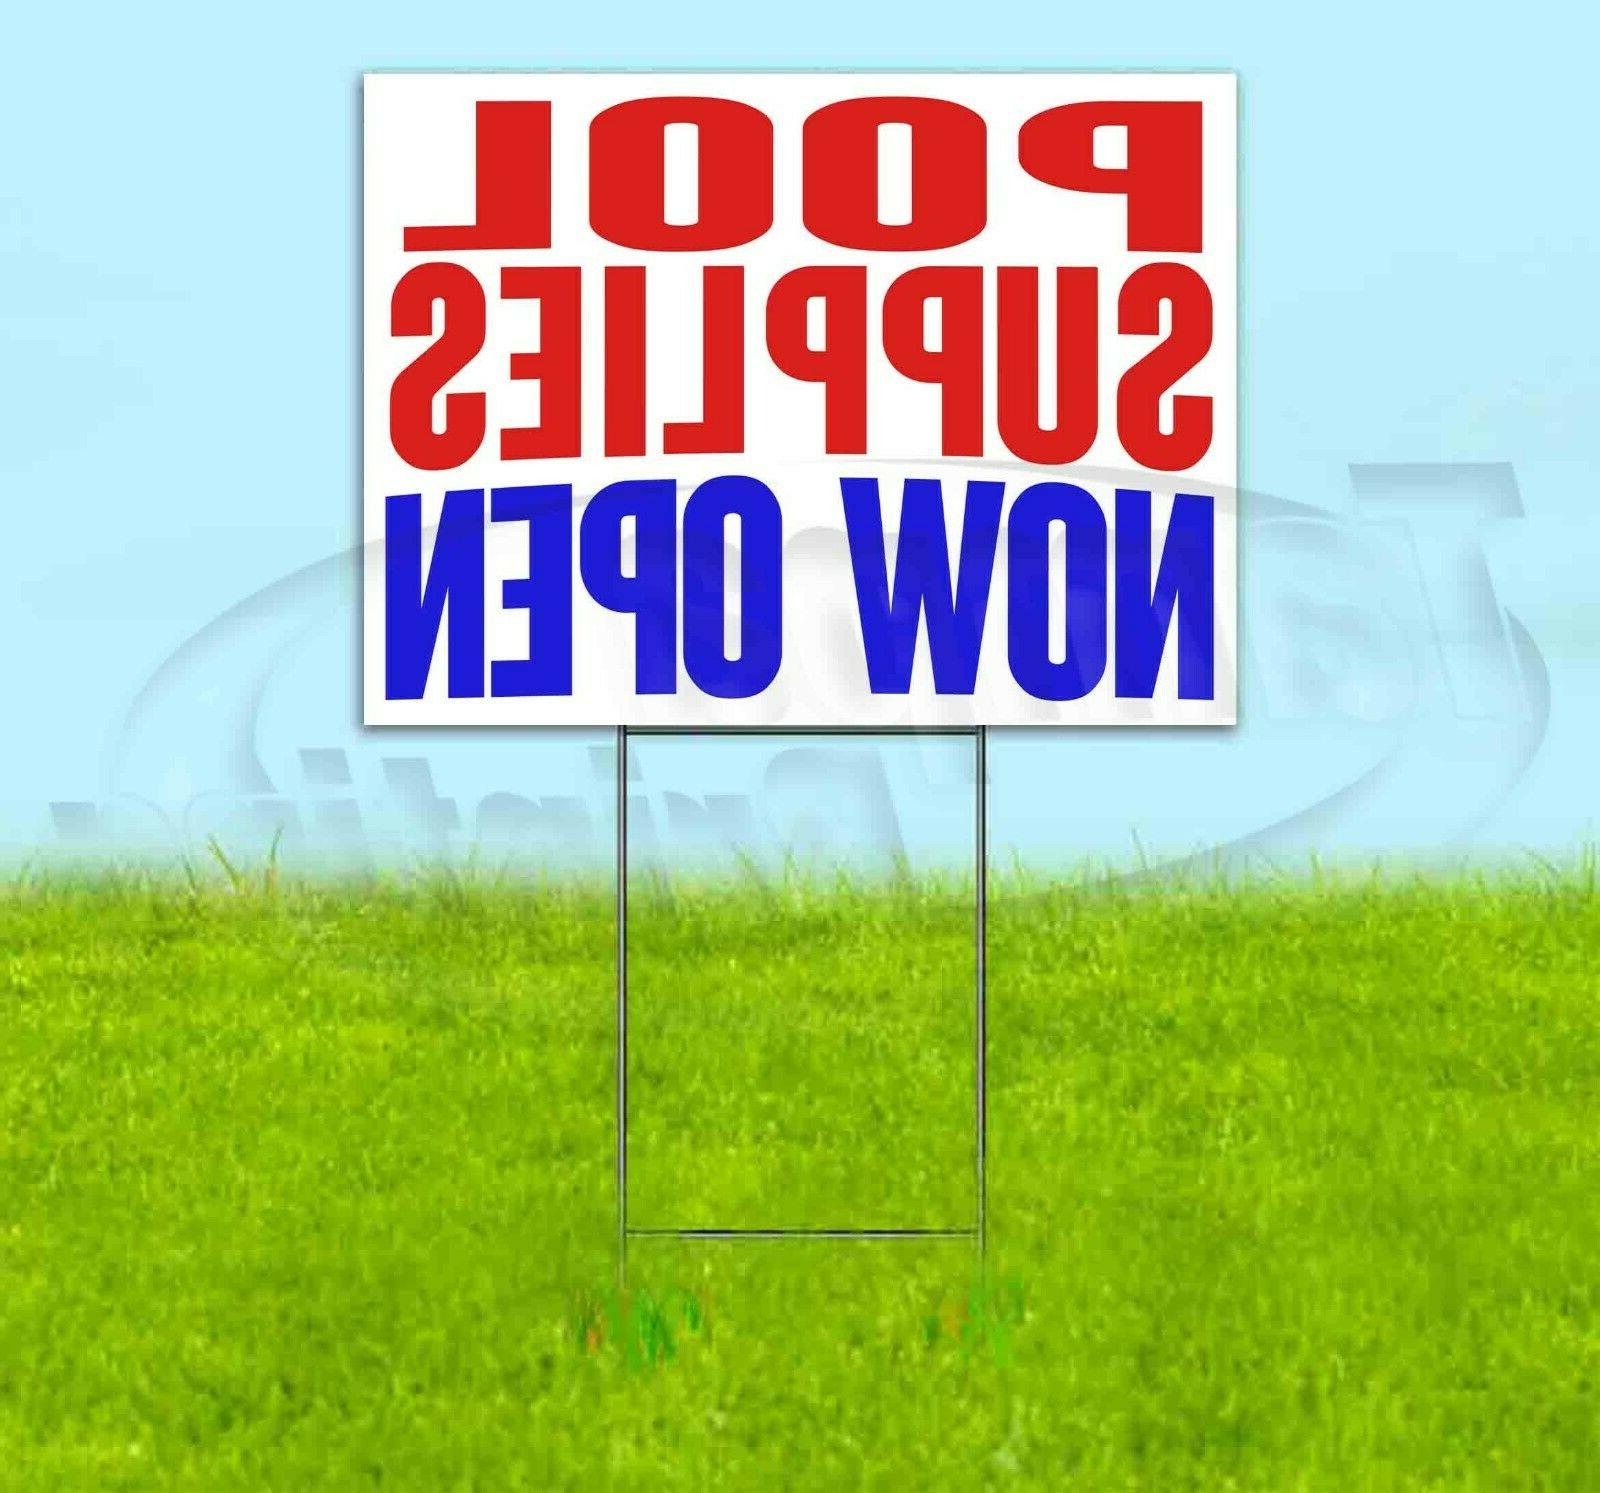 pool supplies now open yard sign corrugated